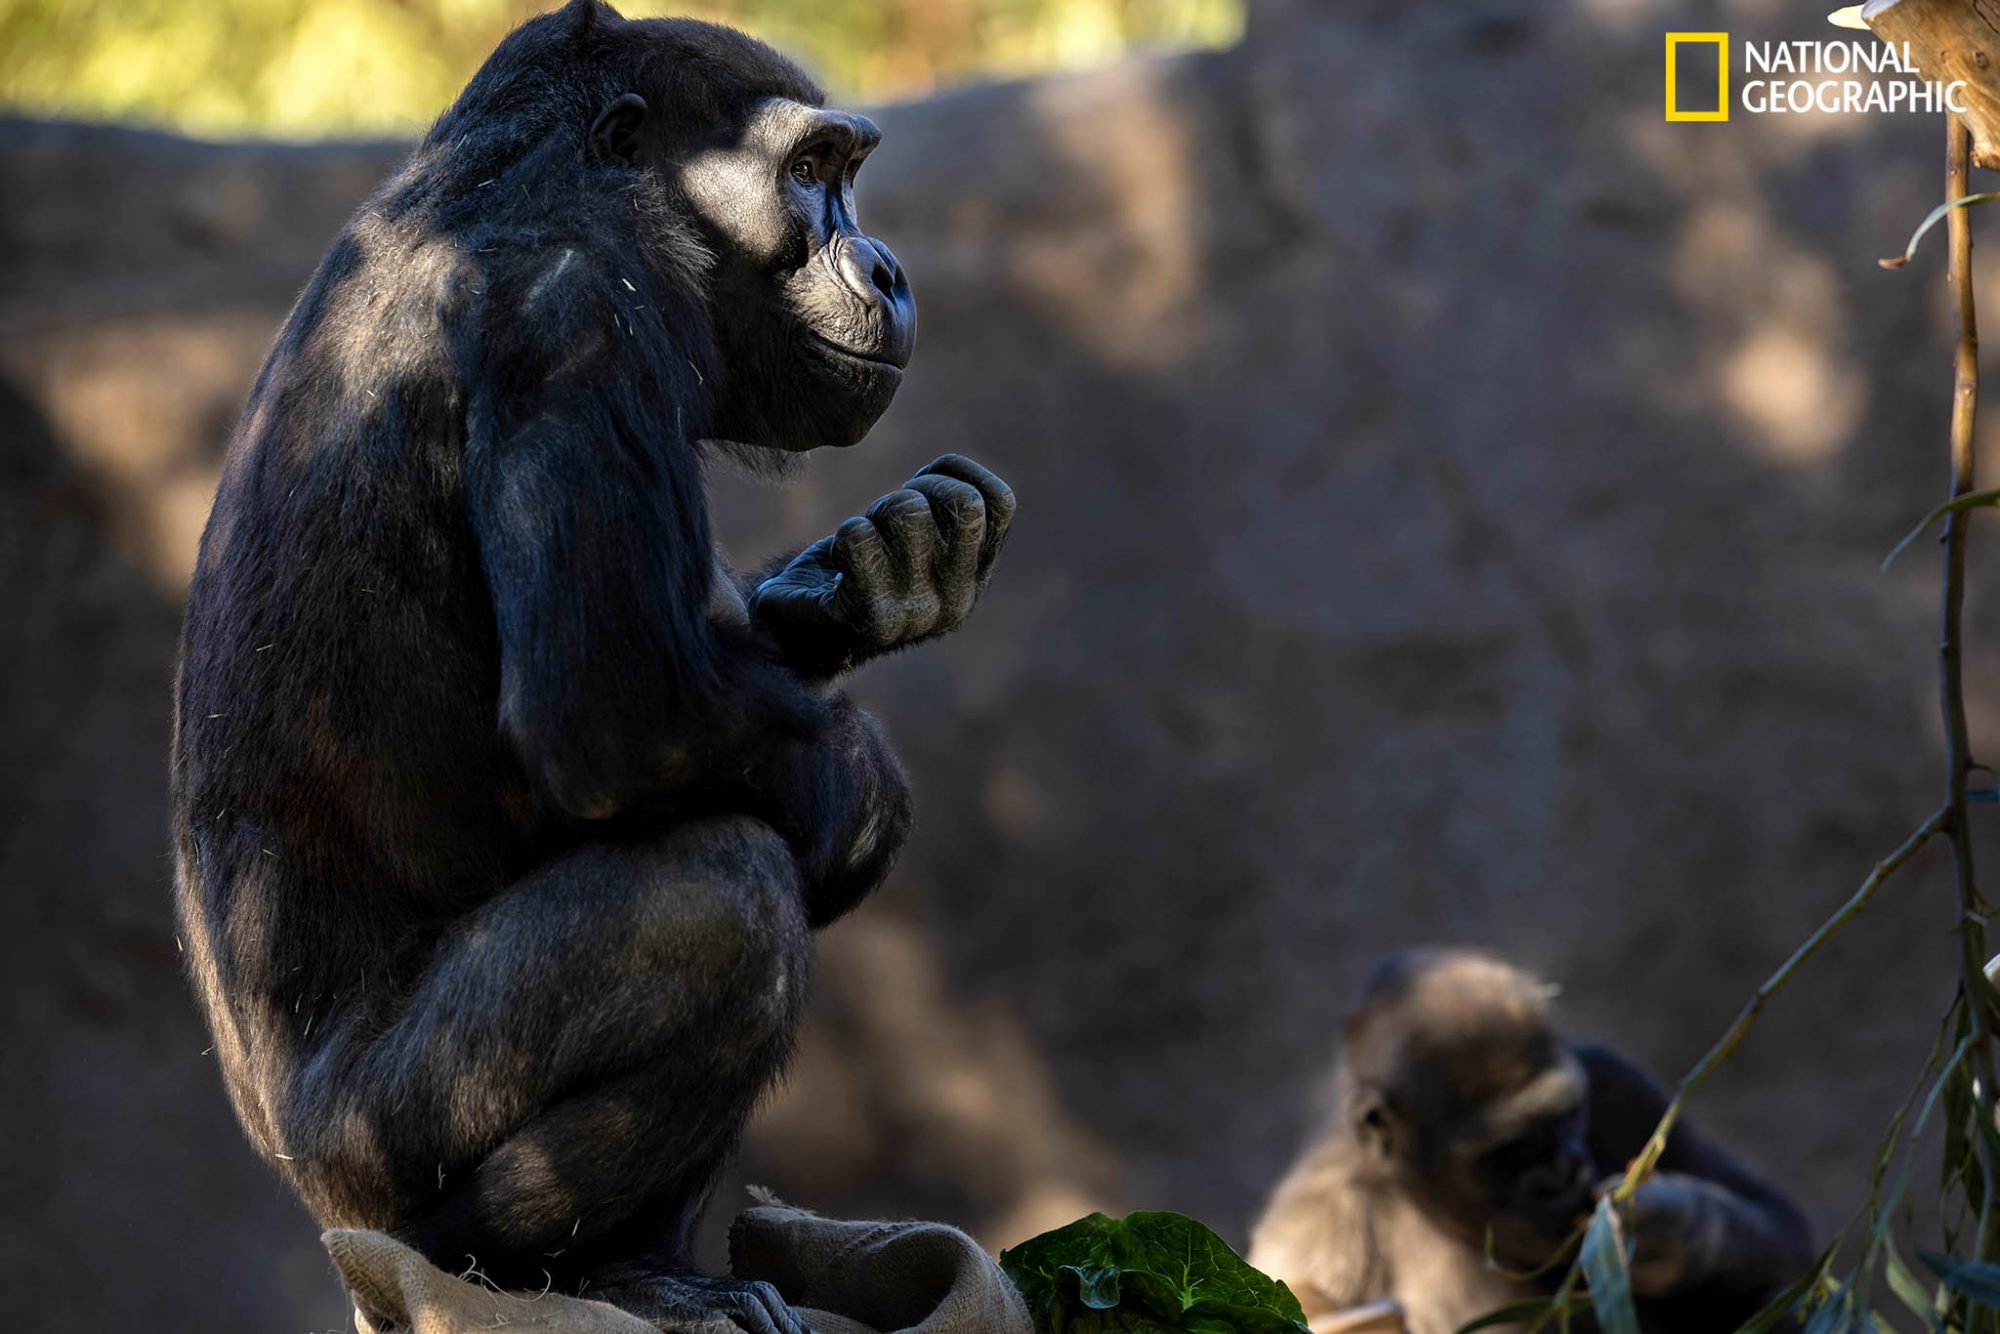 Healthy again and back on public display, two members of the gorilla troop relax in their habitat. Lamberski's team plans to give them the experimental vaccine later this spring.